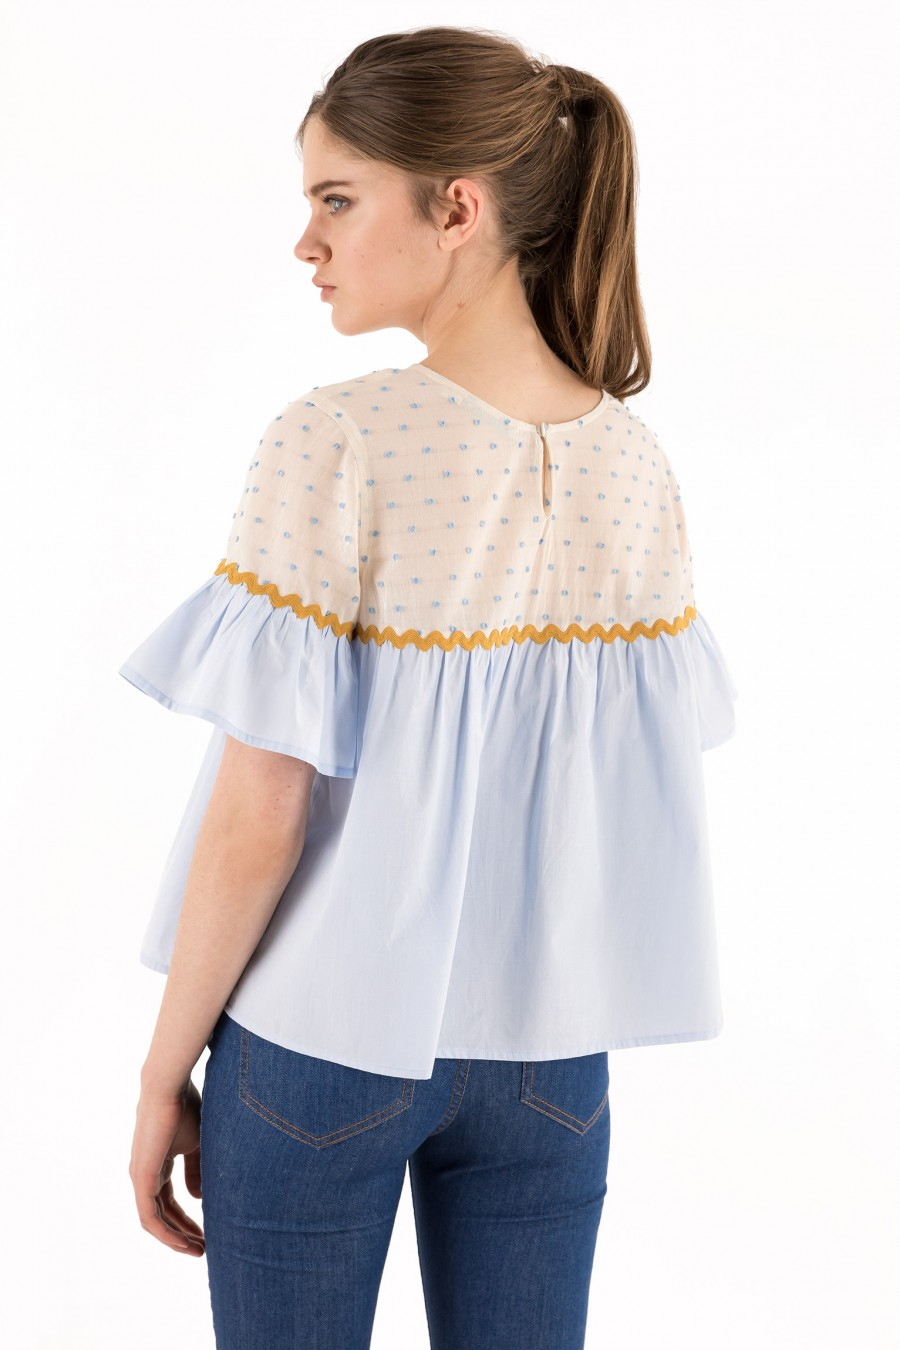 Blouse illustrated by Kate Pugsley